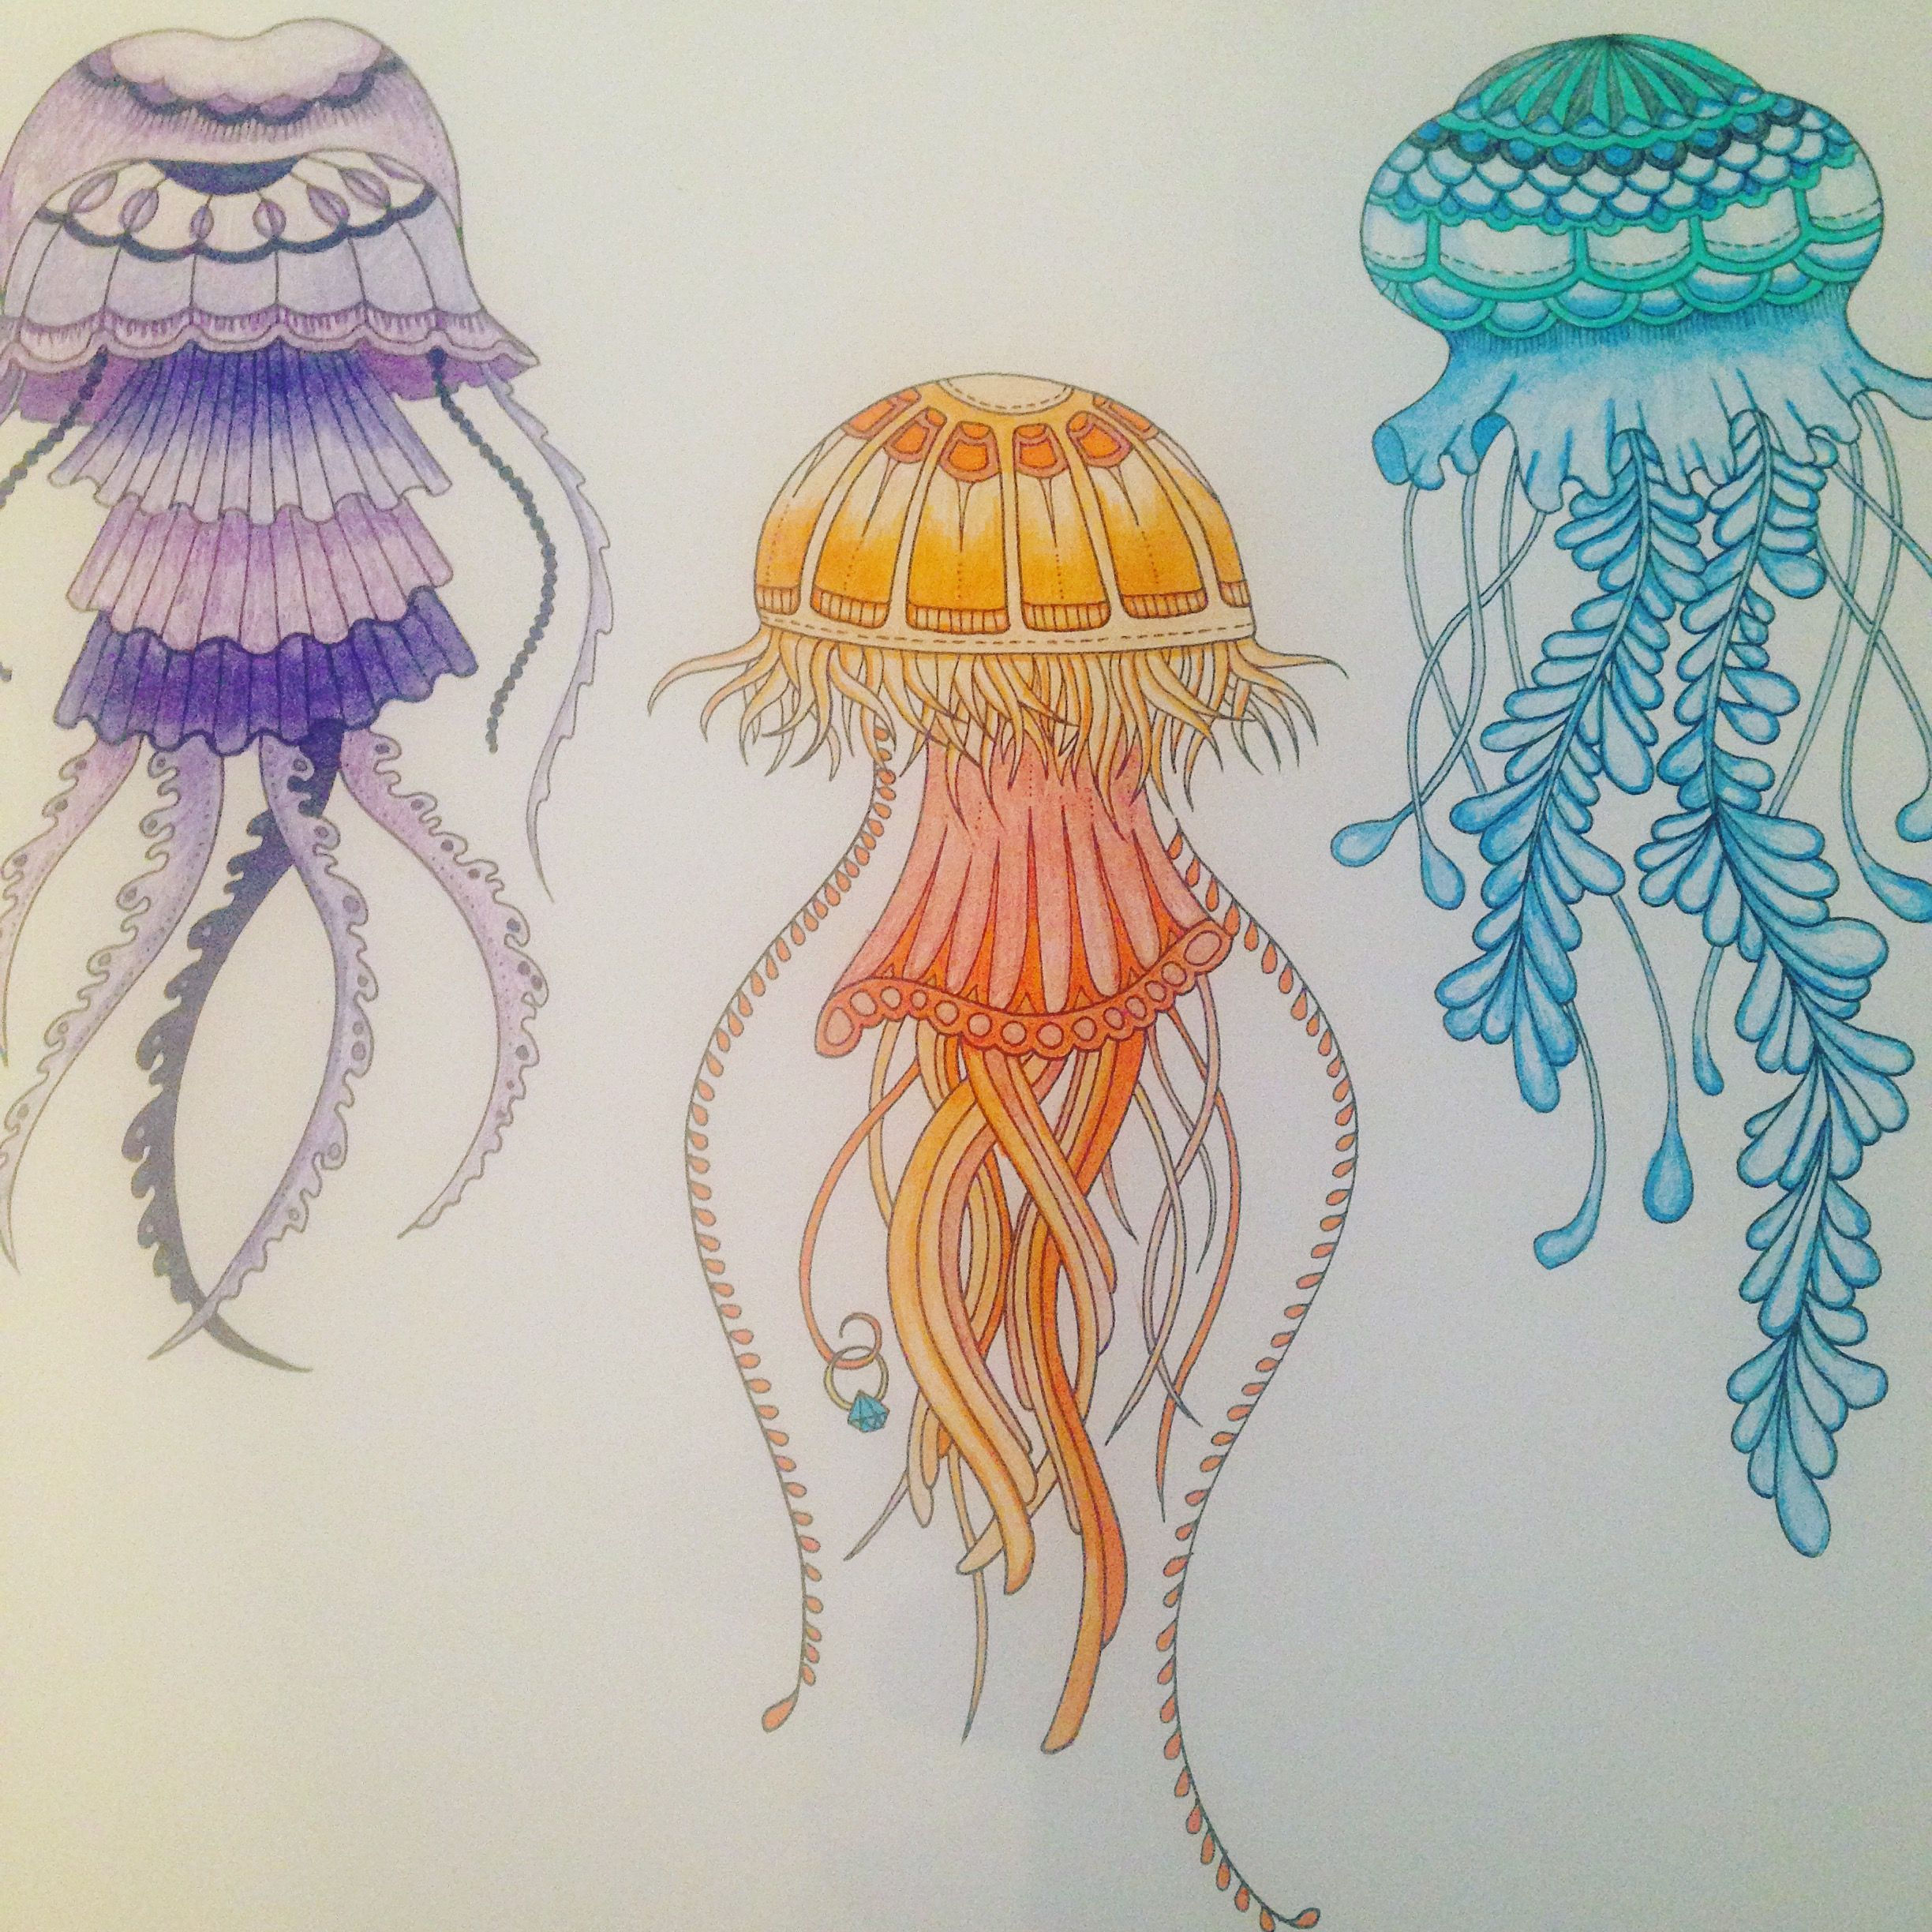 Art therapy coloring book and pencils - Lost Ocean Coloring Book By Johanna Basford Jellyfish In Colored Pencil Jelly Fishart Therapycoloring